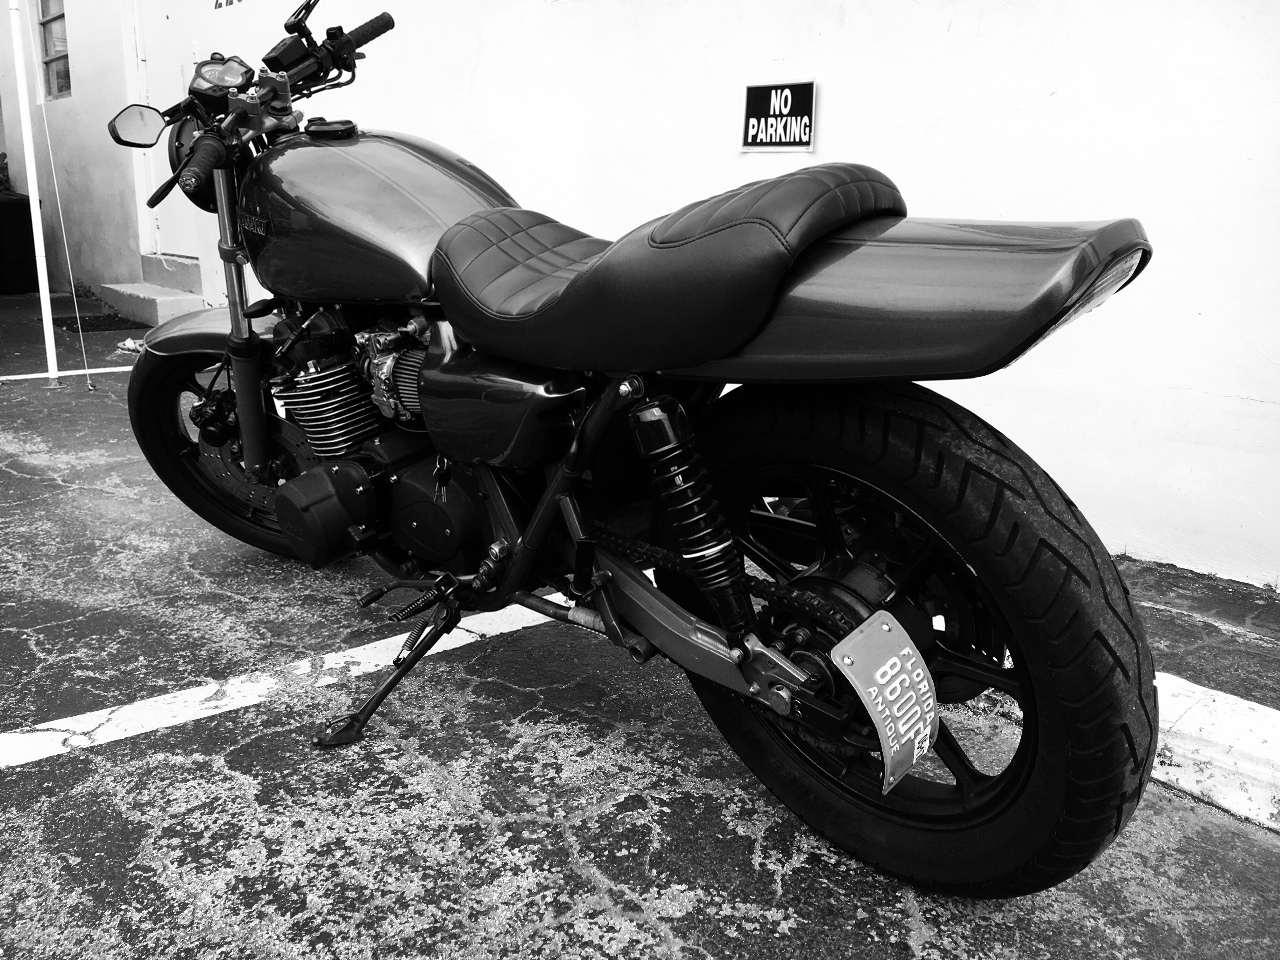 Kz 650 For Sale - Kawasaki Motorcycles - Cycle Trader